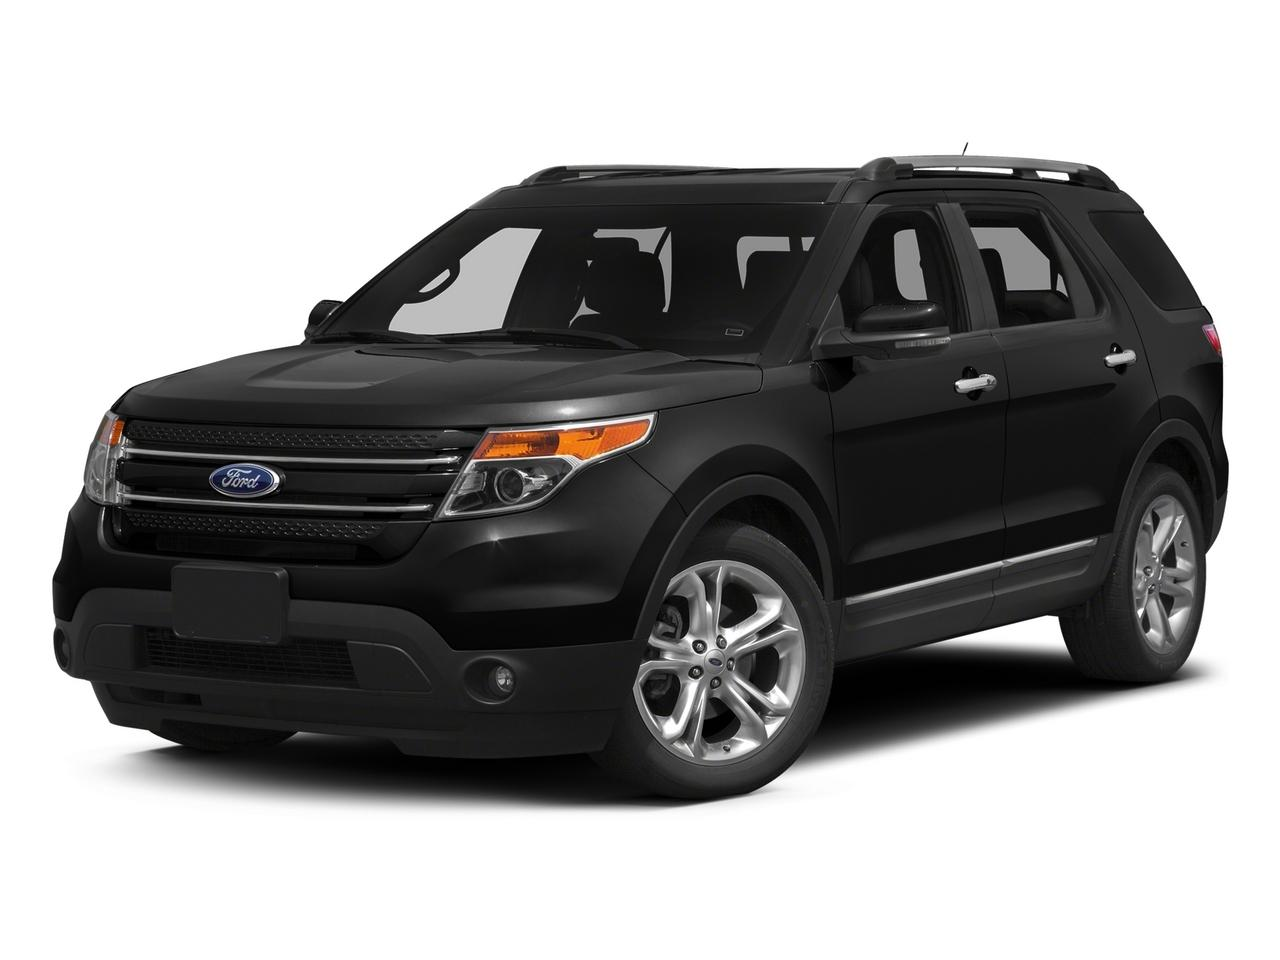 2015 Ford Explorer Vehicle Photo in Akron, OH 44312